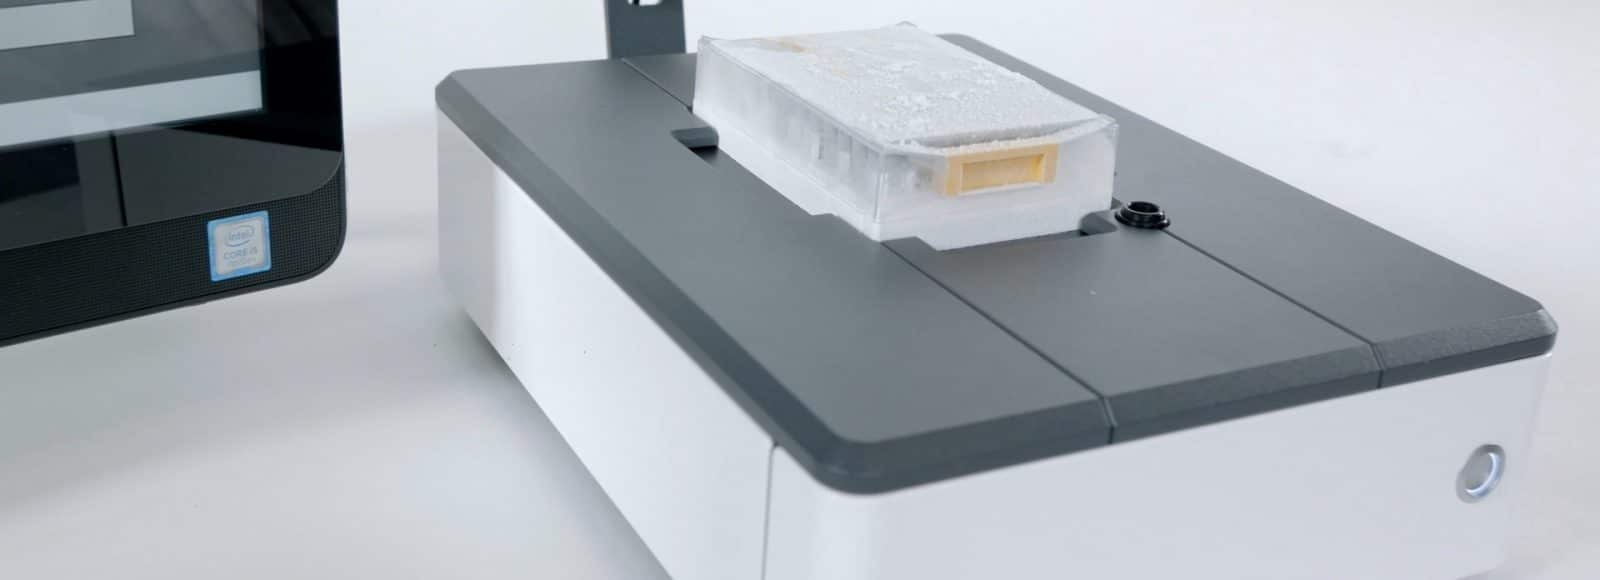 Anti-frost system DR710